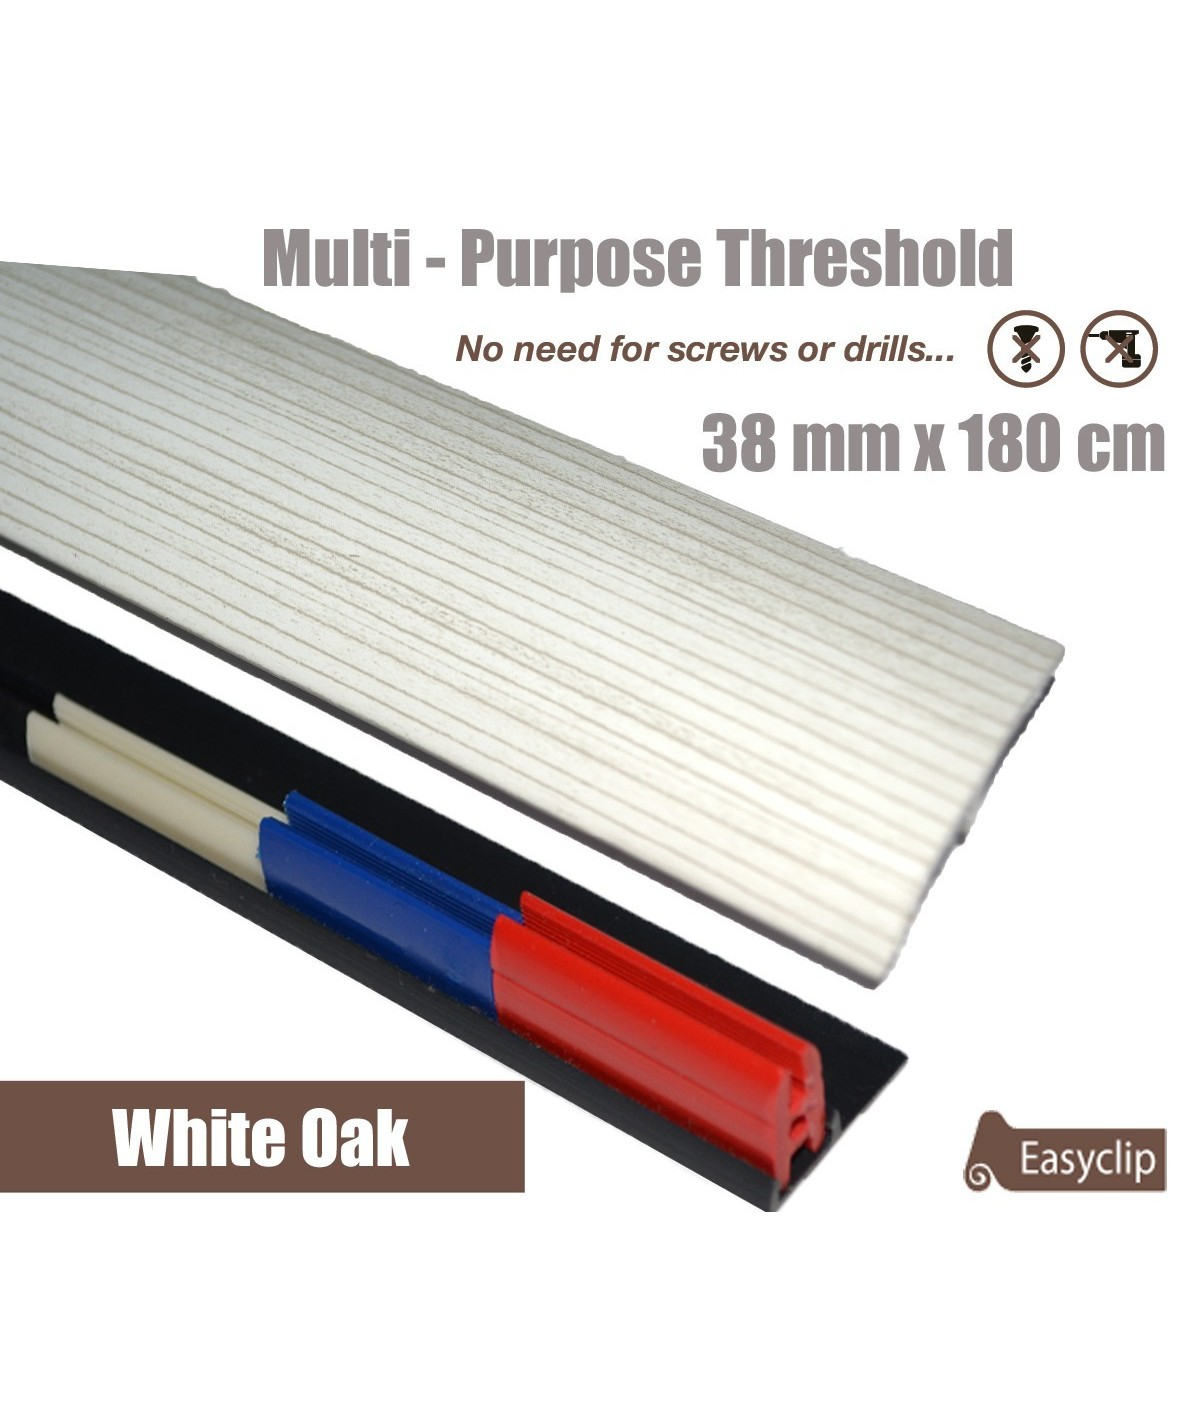 White Oak Threshold Strip 38mm x 180cm laminate multi Purpose Adhesive Clip System